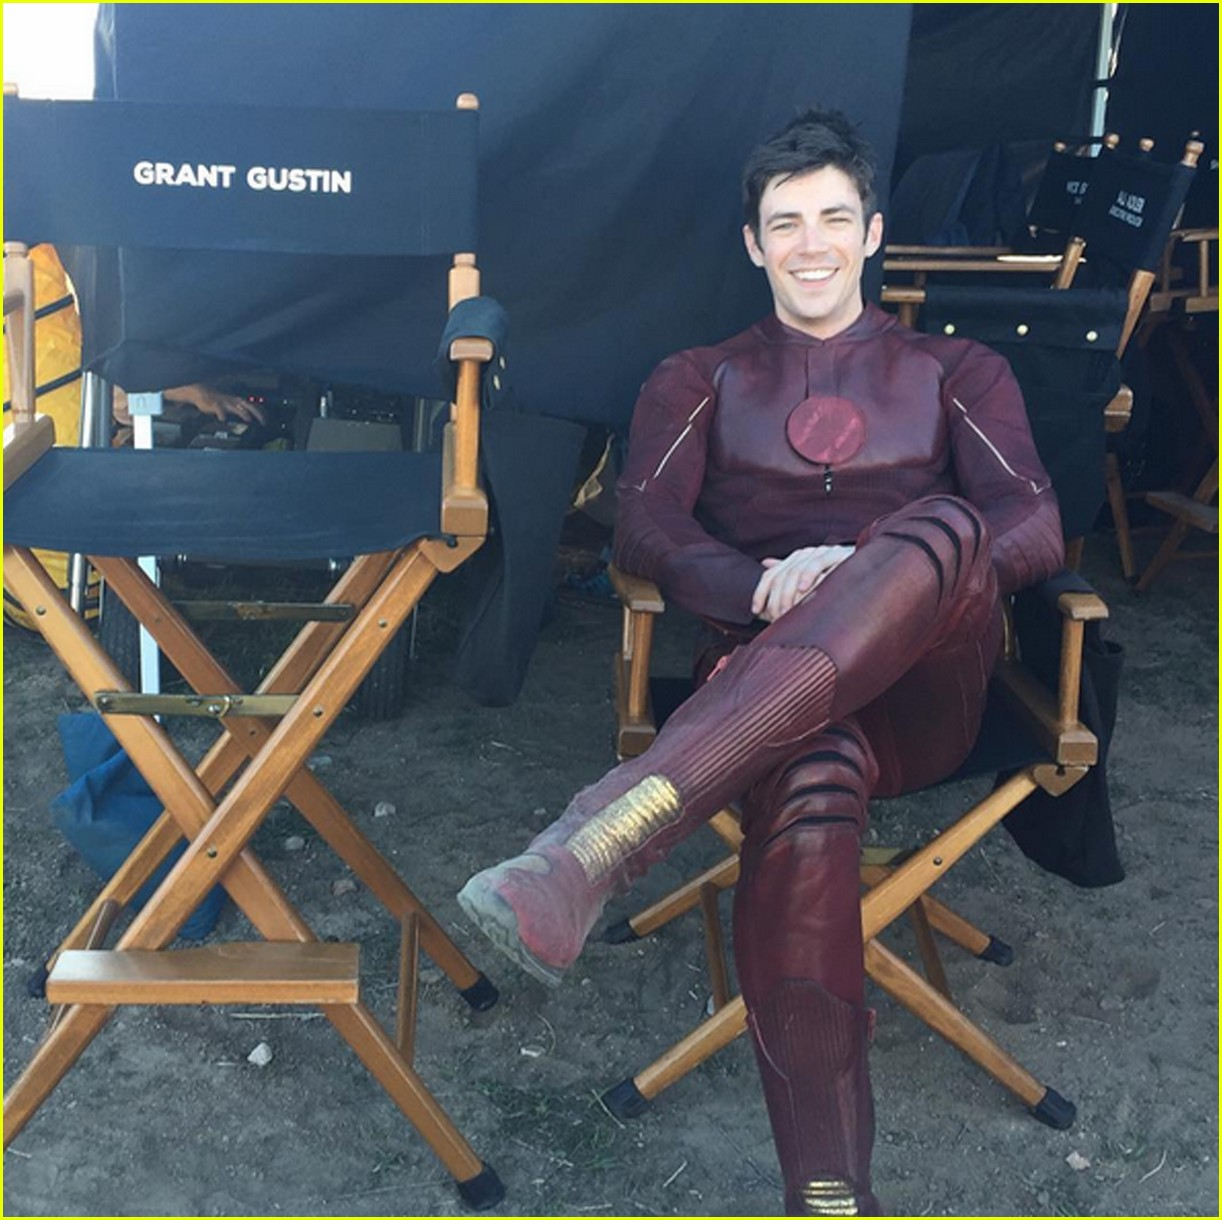 Grant Gustin Shares Photos From Set Of Flash